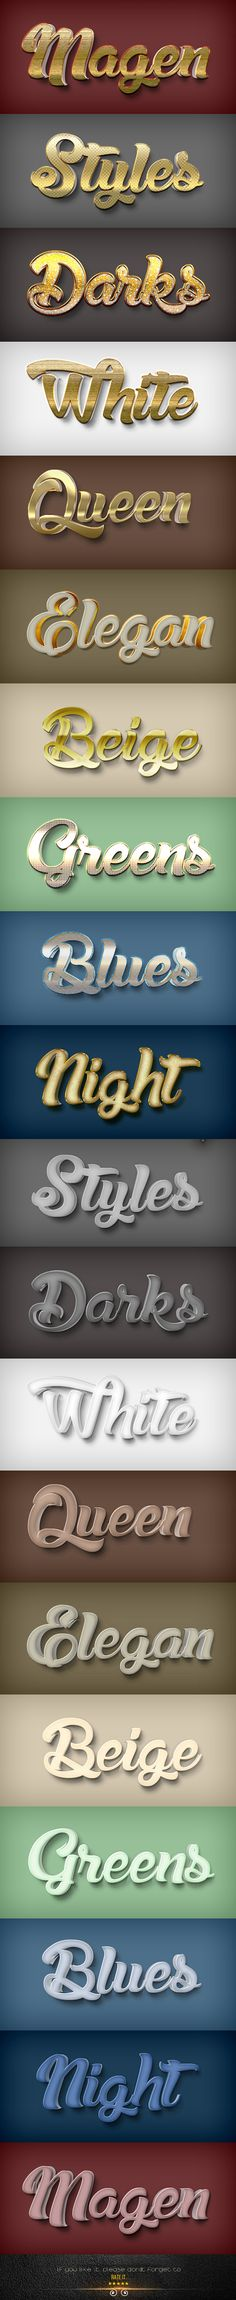 20 3D Styles V.14A by diansyah_dhanny Fantasy shine text effects for photoshop, just click and applicable photoshop text effects. 10 3D photoshop styles just click app